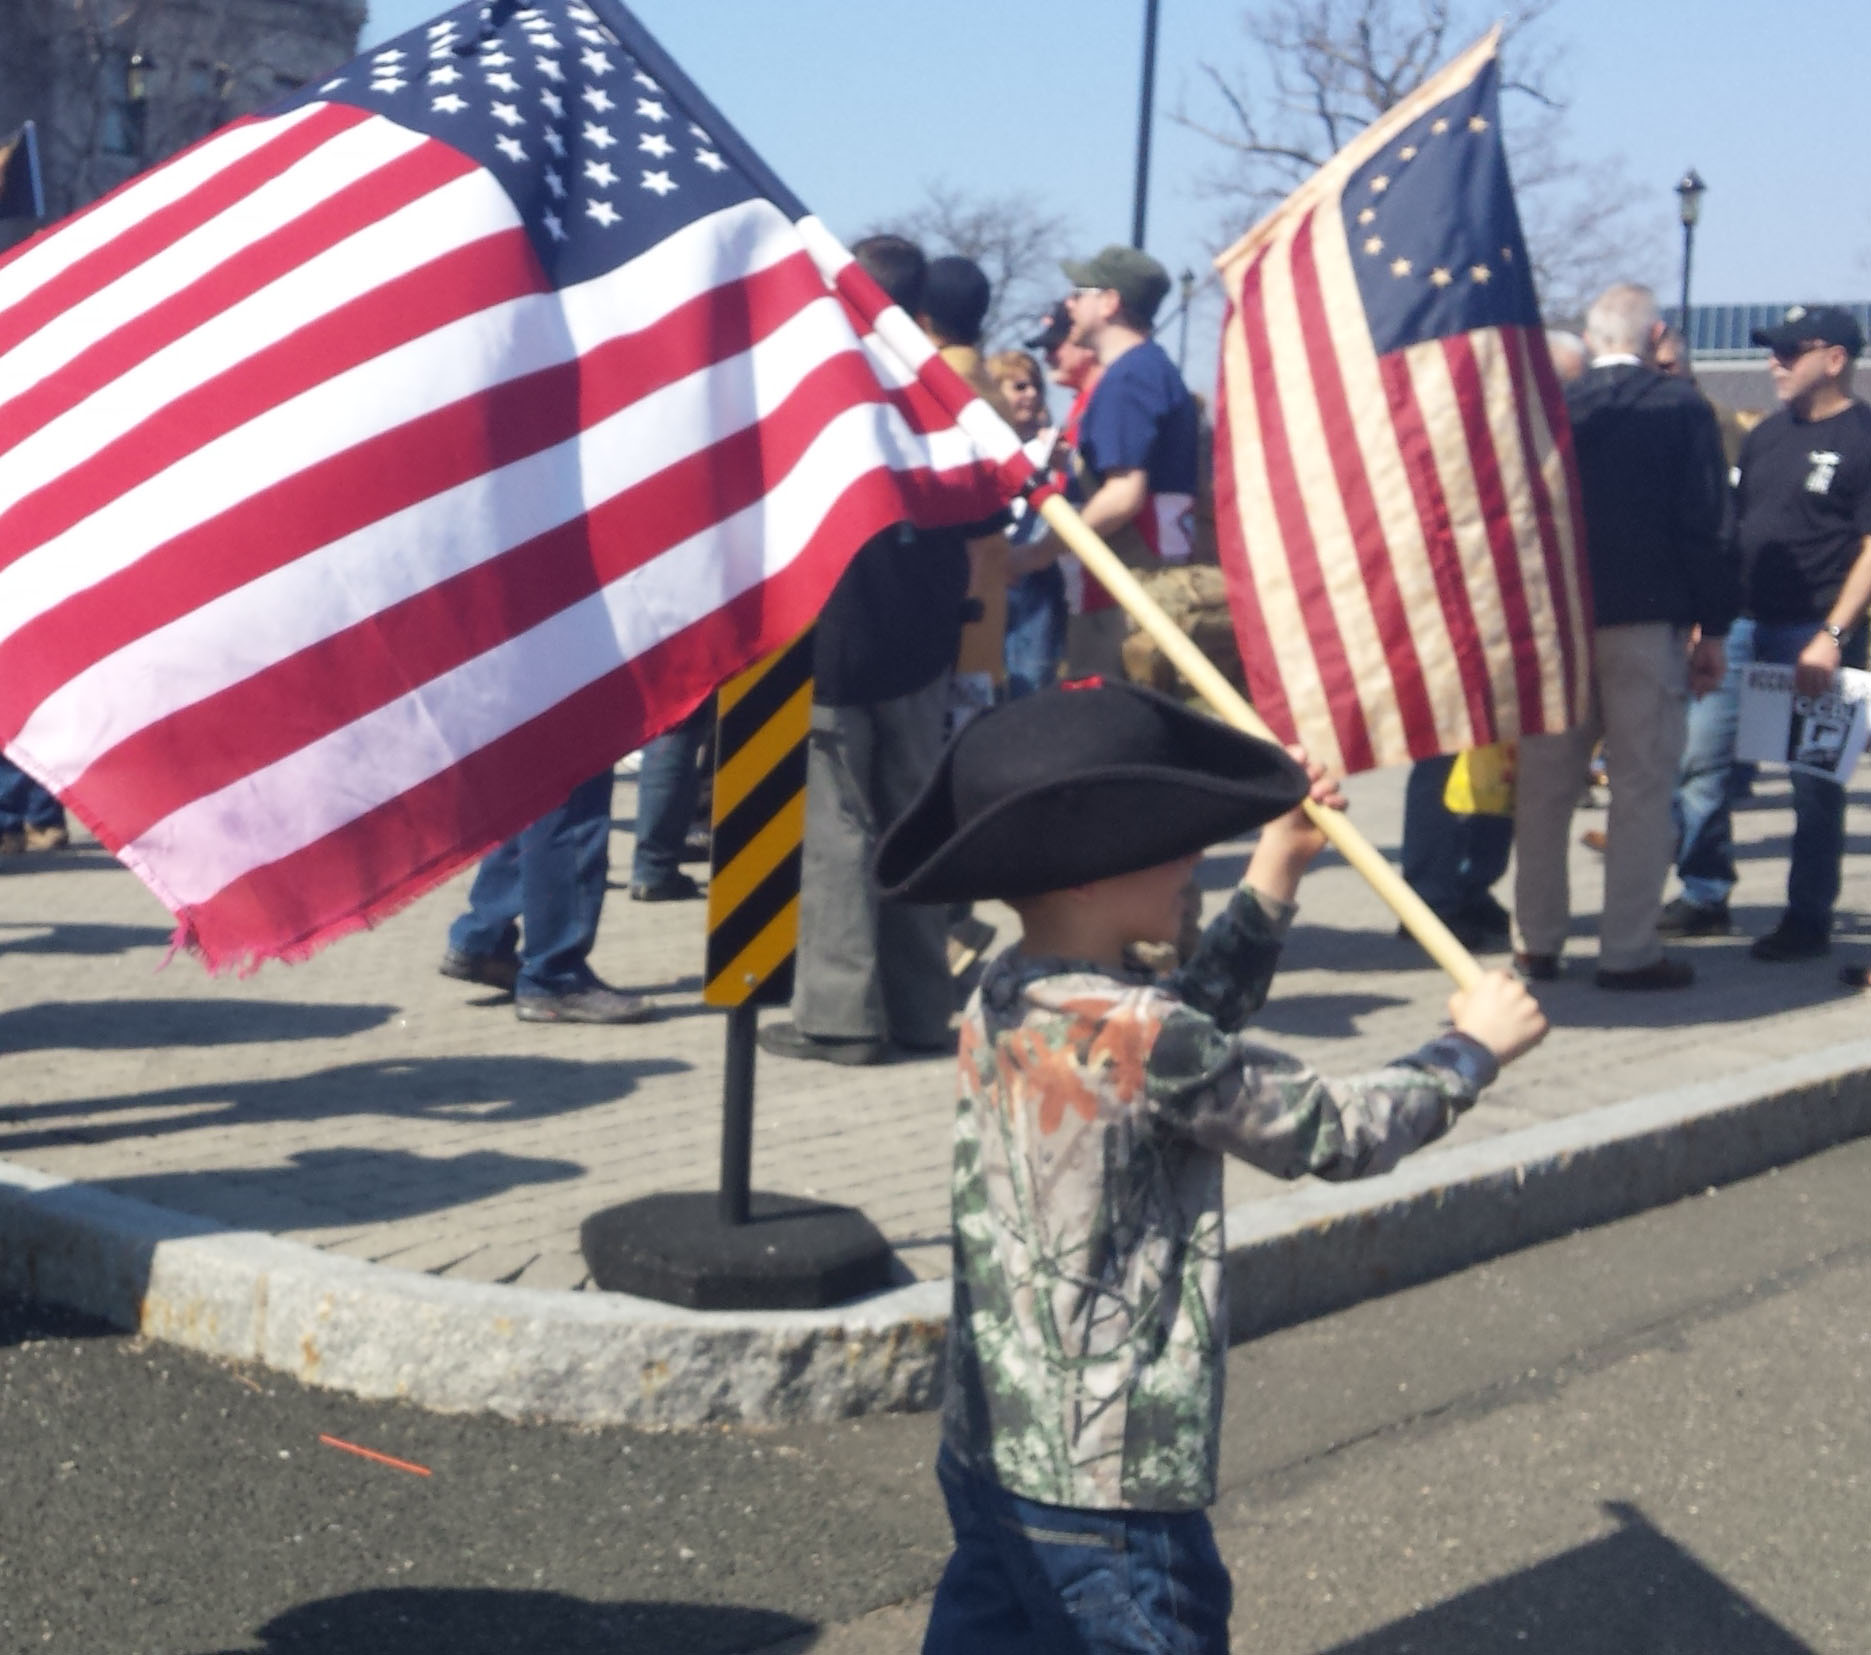 Second Amendment rally in Hartford implores hundreds to 'fight, fight, fight'